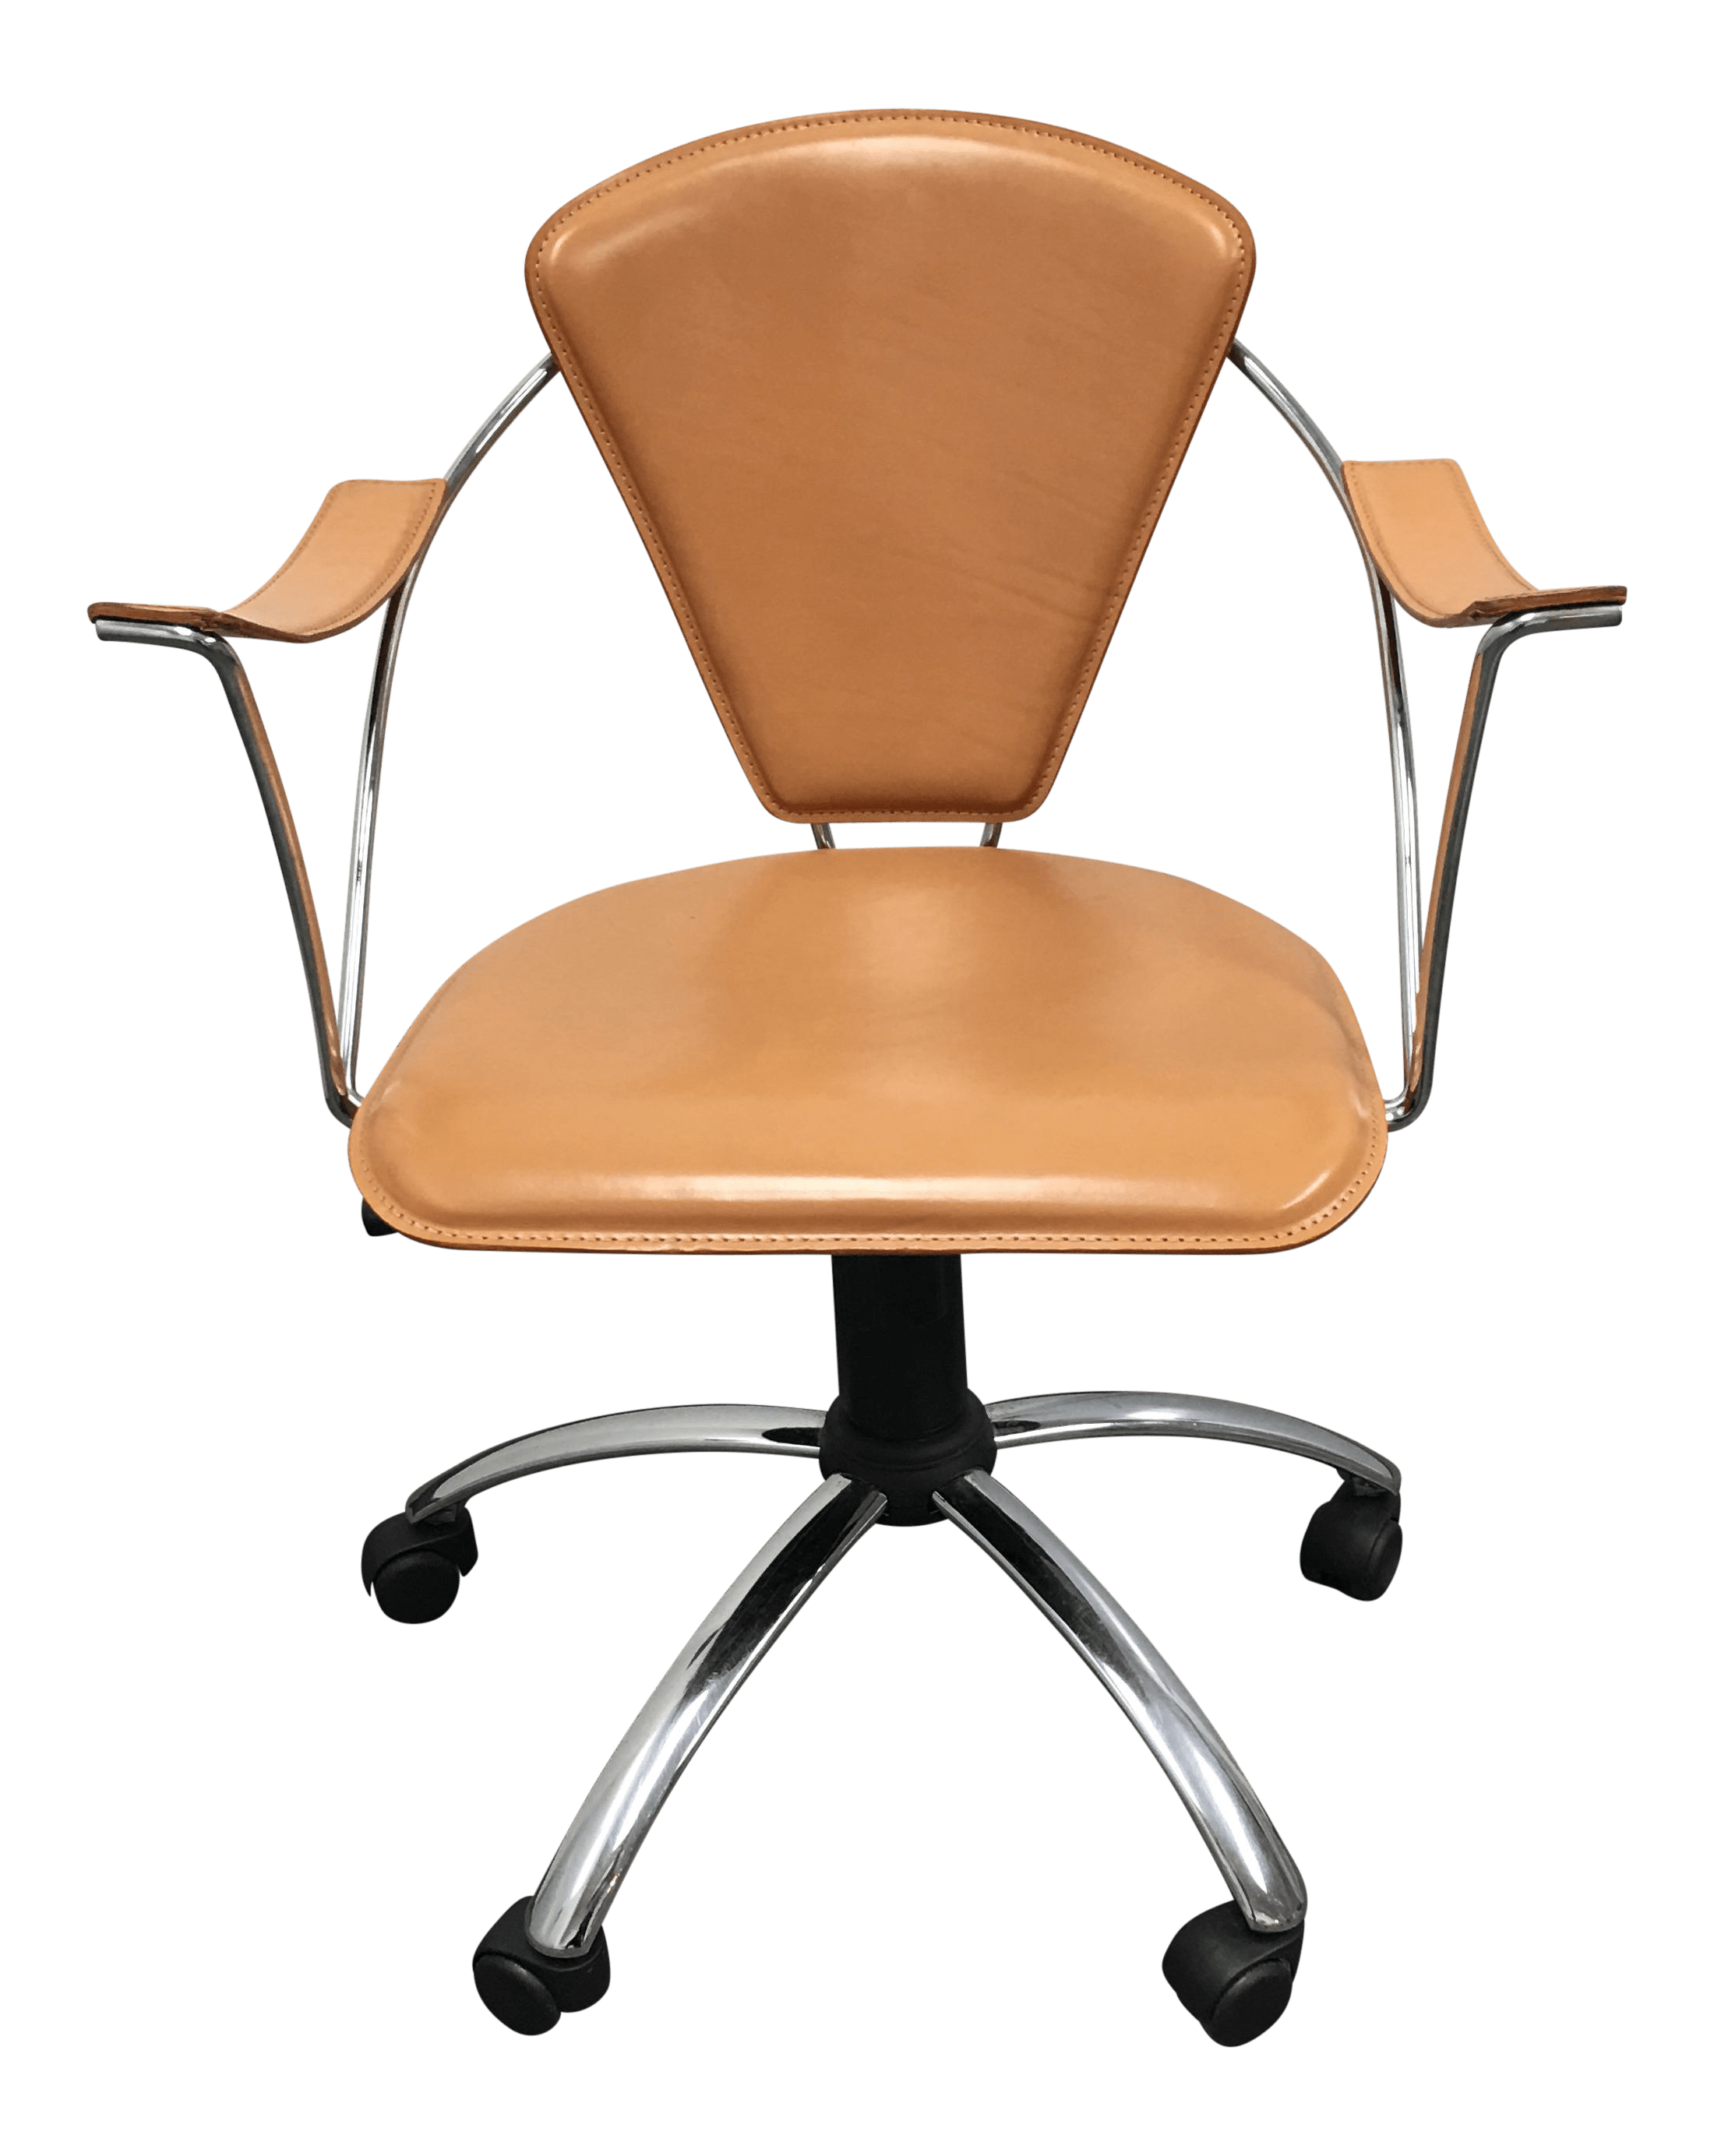 Colored Office Chairs Italian Cognac Colored Leather Office Chair Chairish